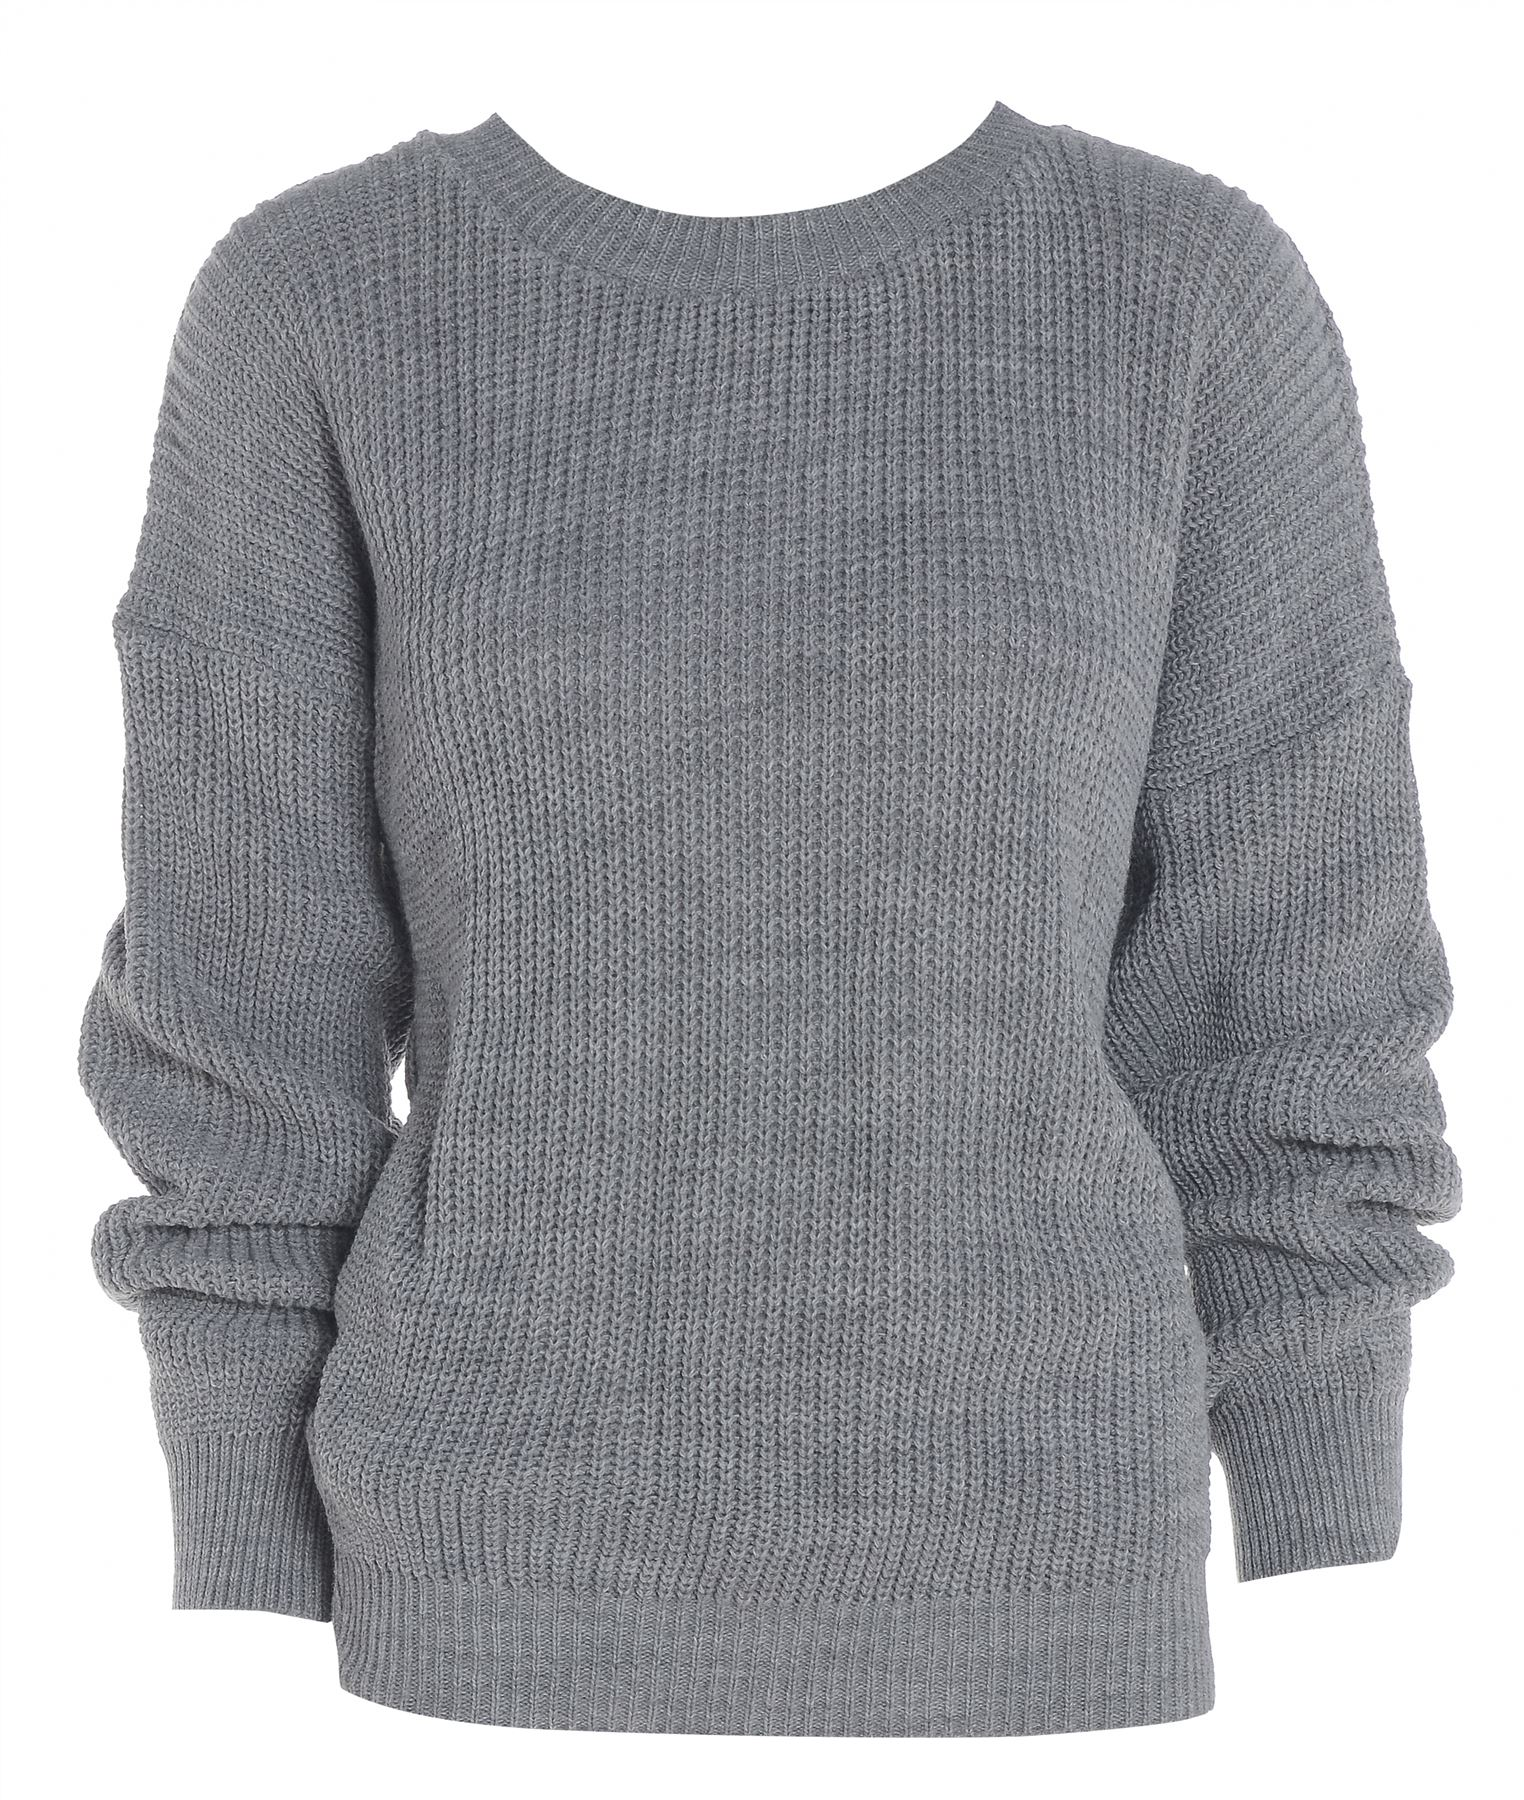 knitted jumpers ladies-womens-plain-colour-chunky-knitted-baggy-jumper- eowamxm